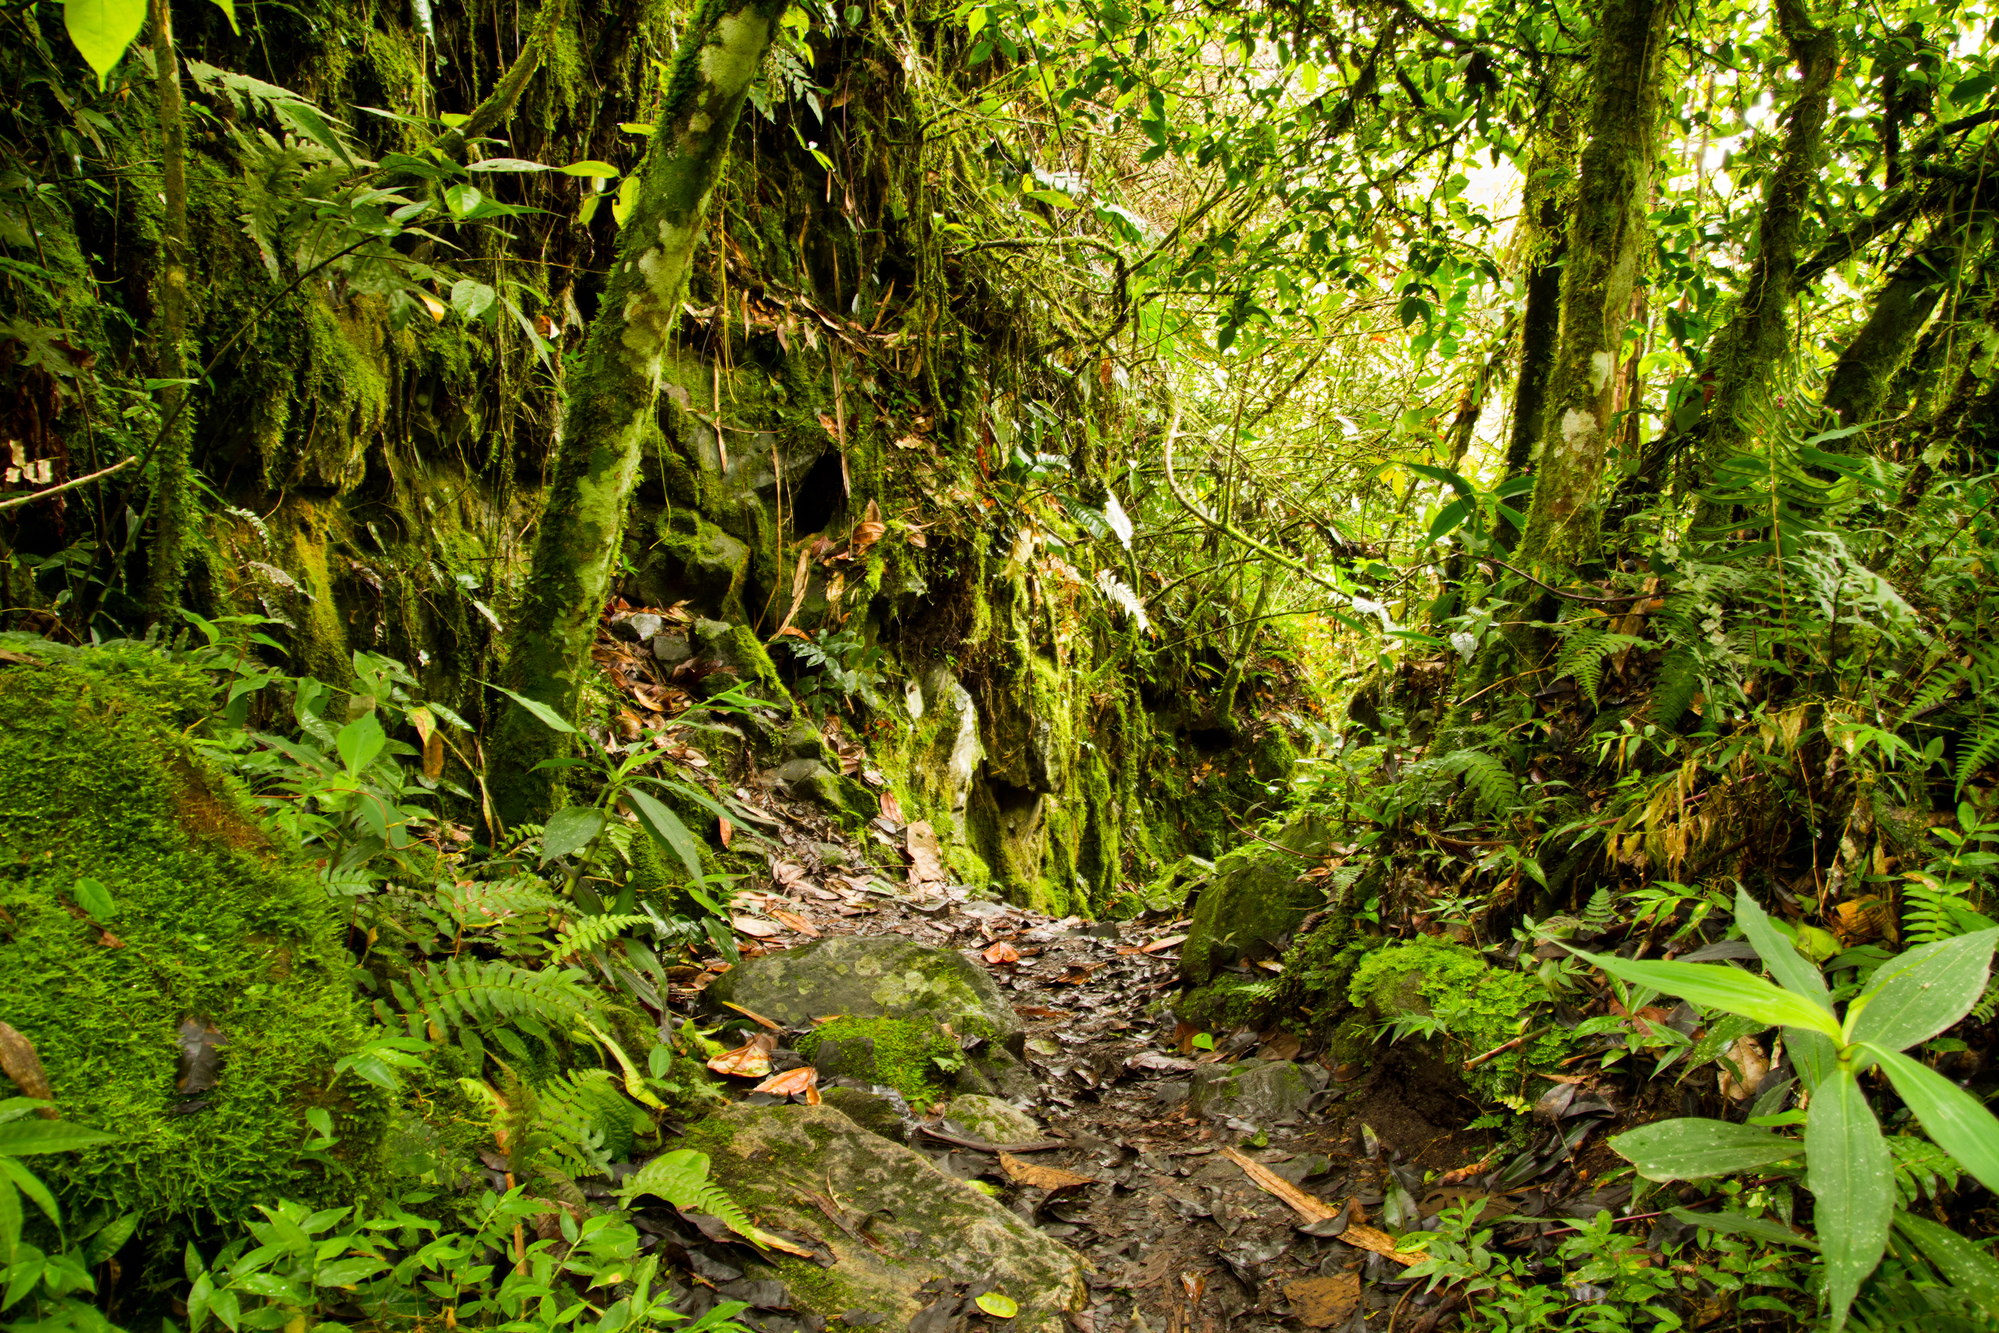 Interior of tropical rainforest in the National Park, Ecuador